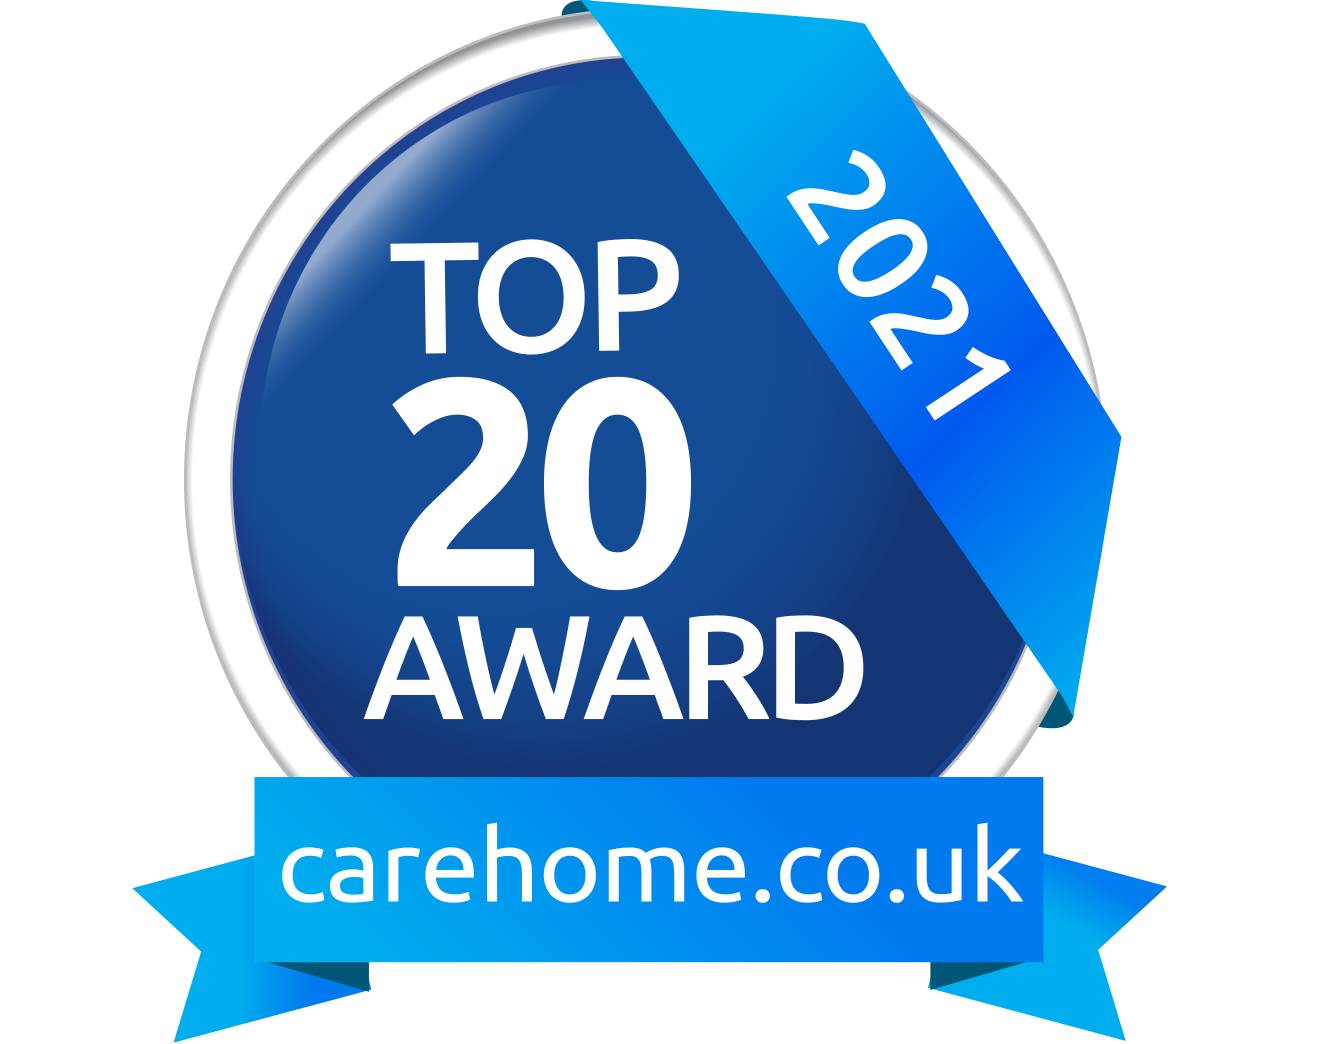 Burnside Care Home recognised as Top 20 Care Homes at Carehome.co.uk regional awards